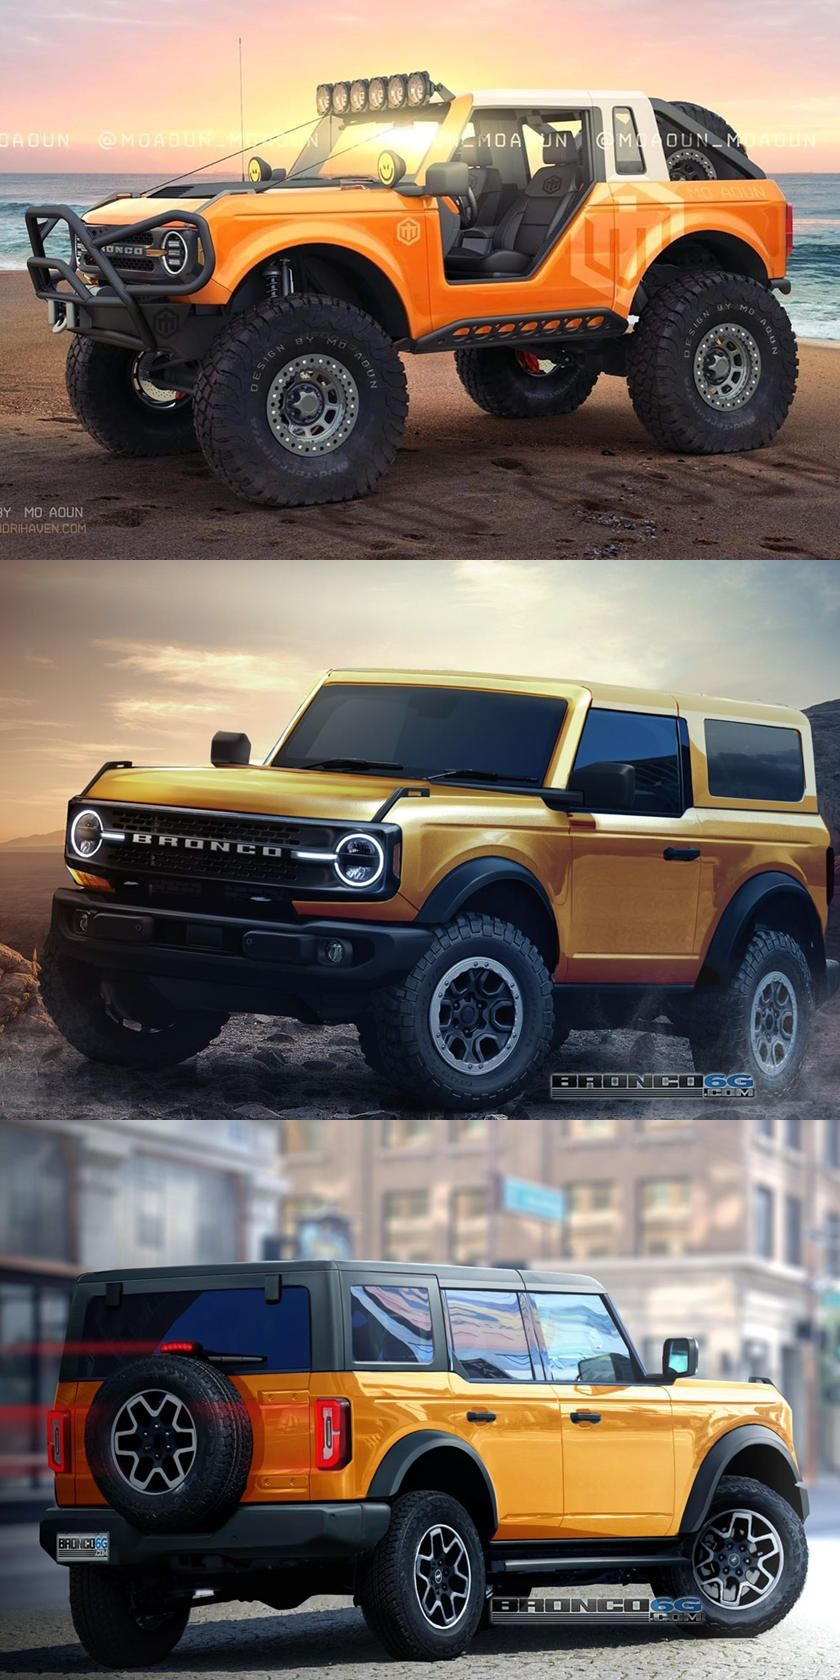 Ford Bronco Raptor Won T Have The Engine You Re Expecting Ford S 3 5 Liter Twin Turbo V6 Is Apparently Too Large For The Bronc In 2020 Ford Bronco Bronco Bronco Truck